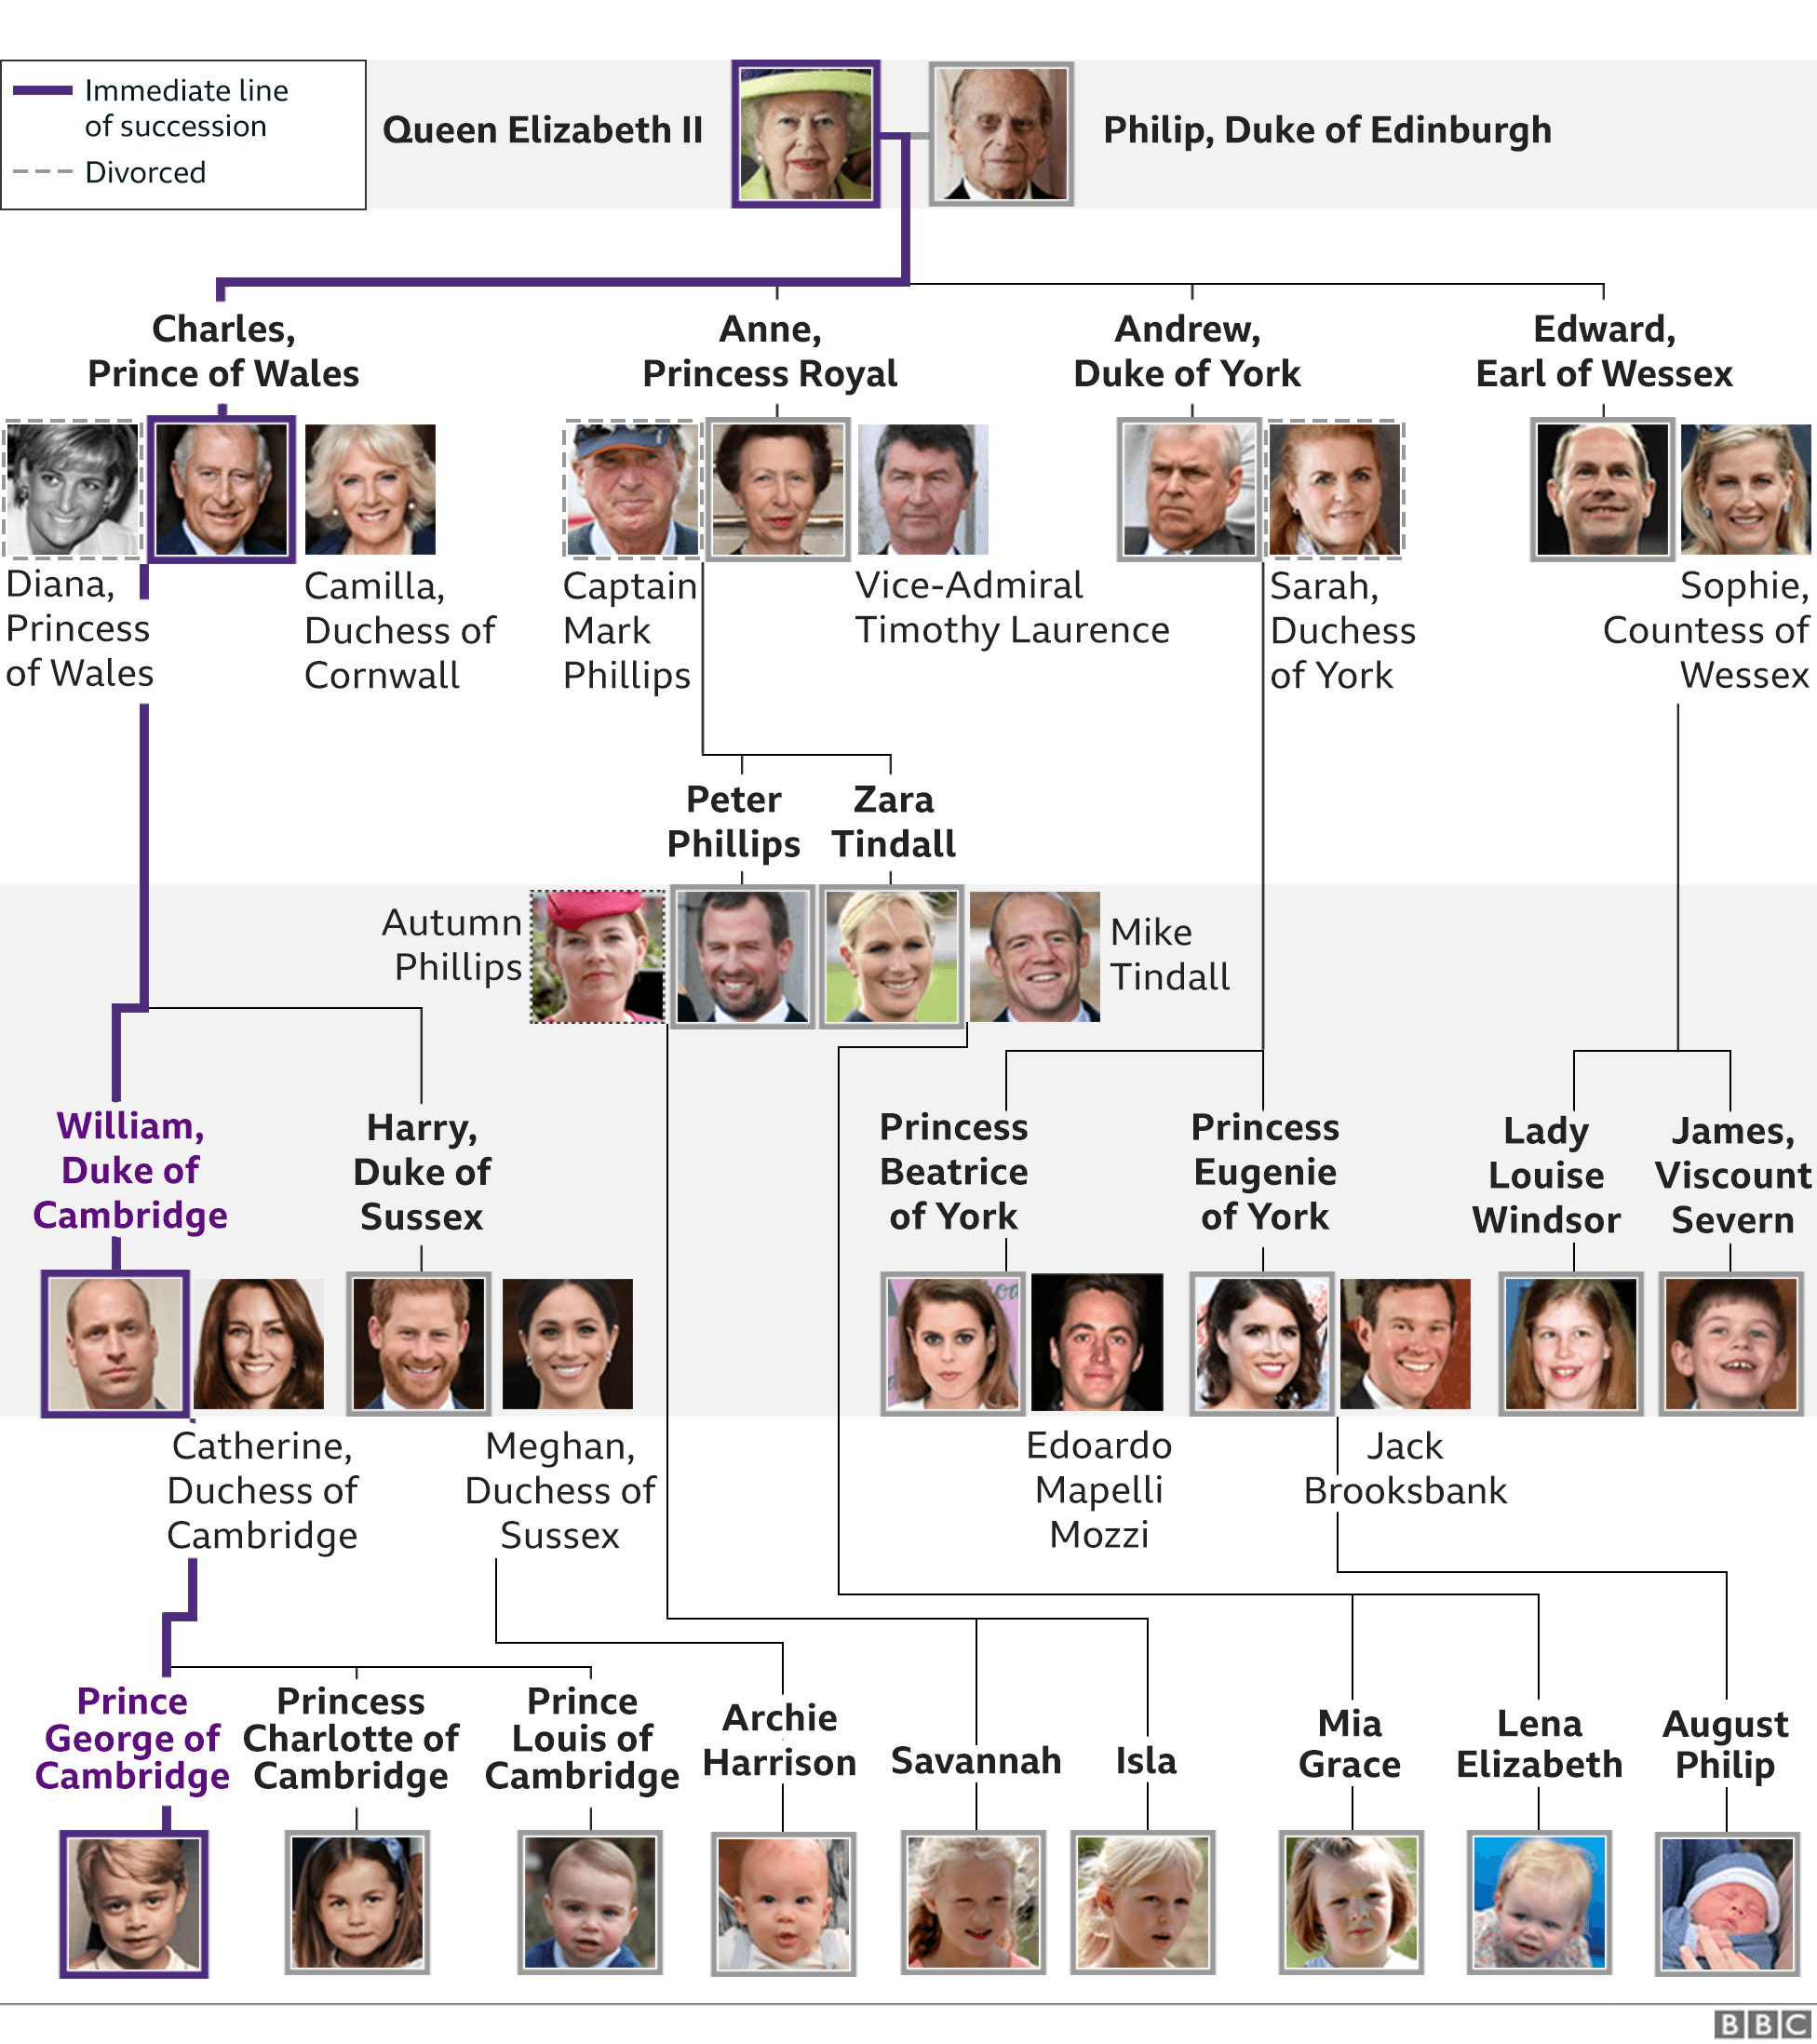 Royal family tree showing line of immediate succession